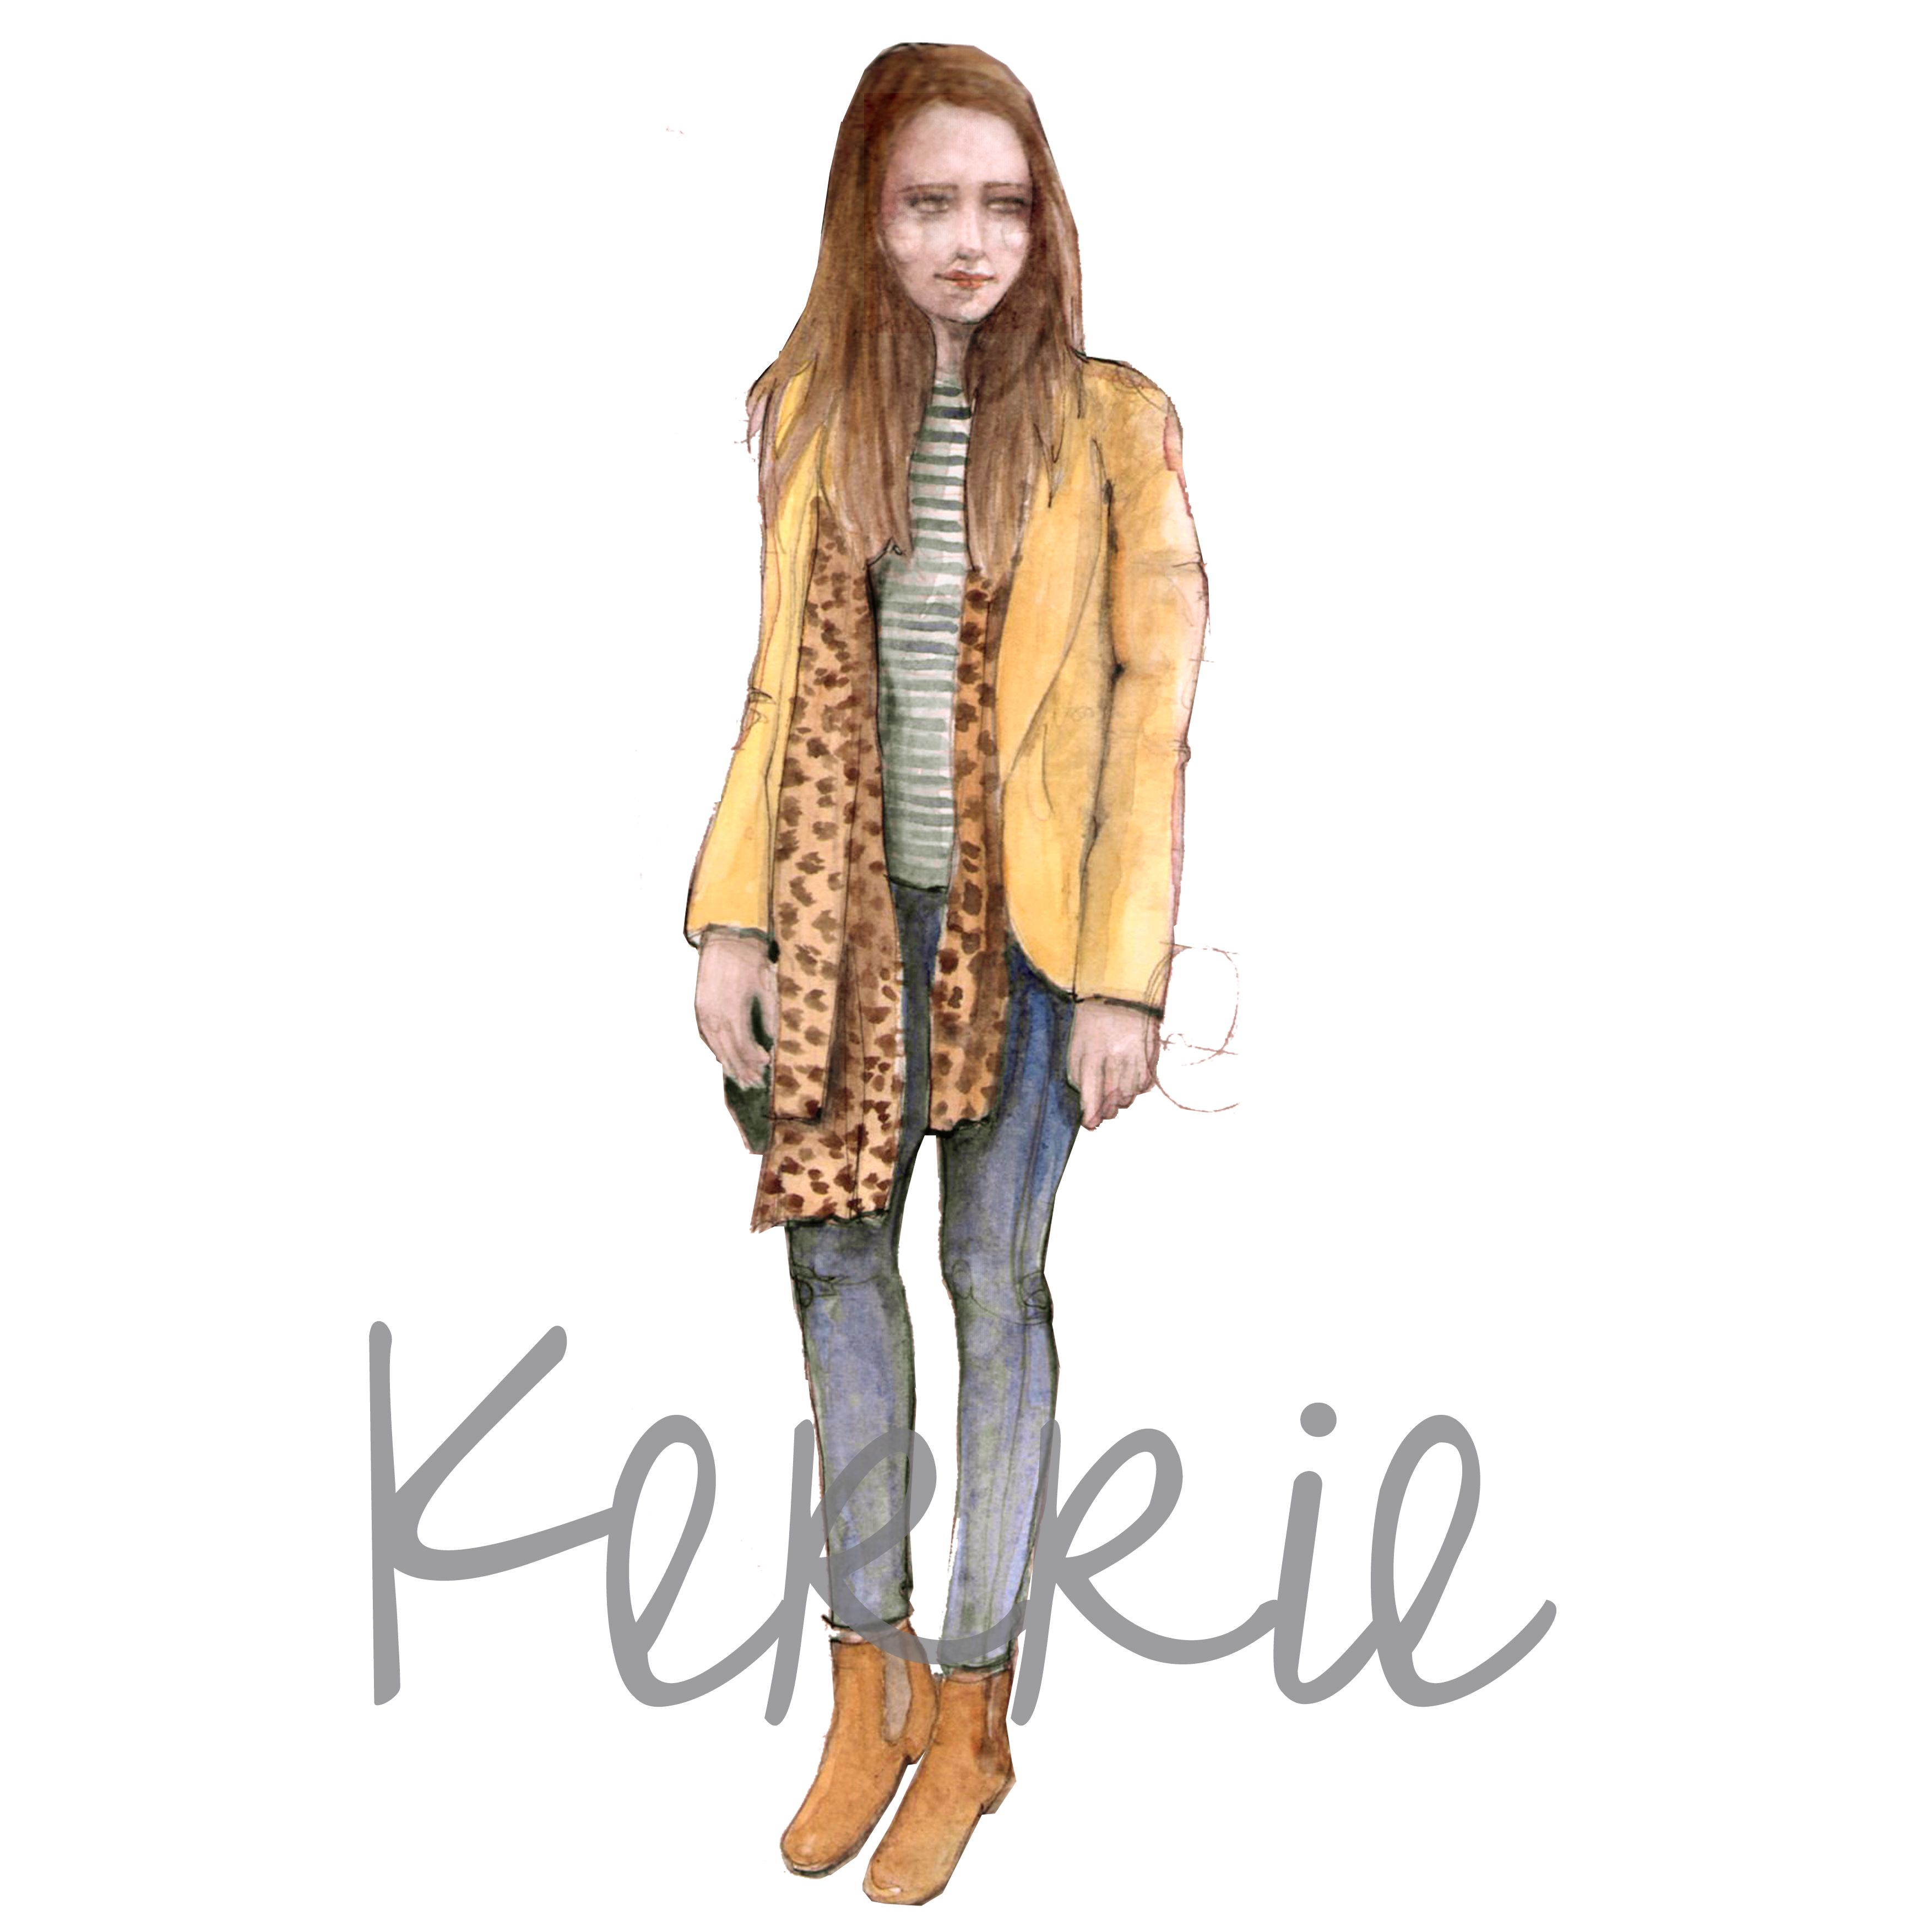 fashion blogger kerrie burke of http://www.rarelytakenseriously.com/